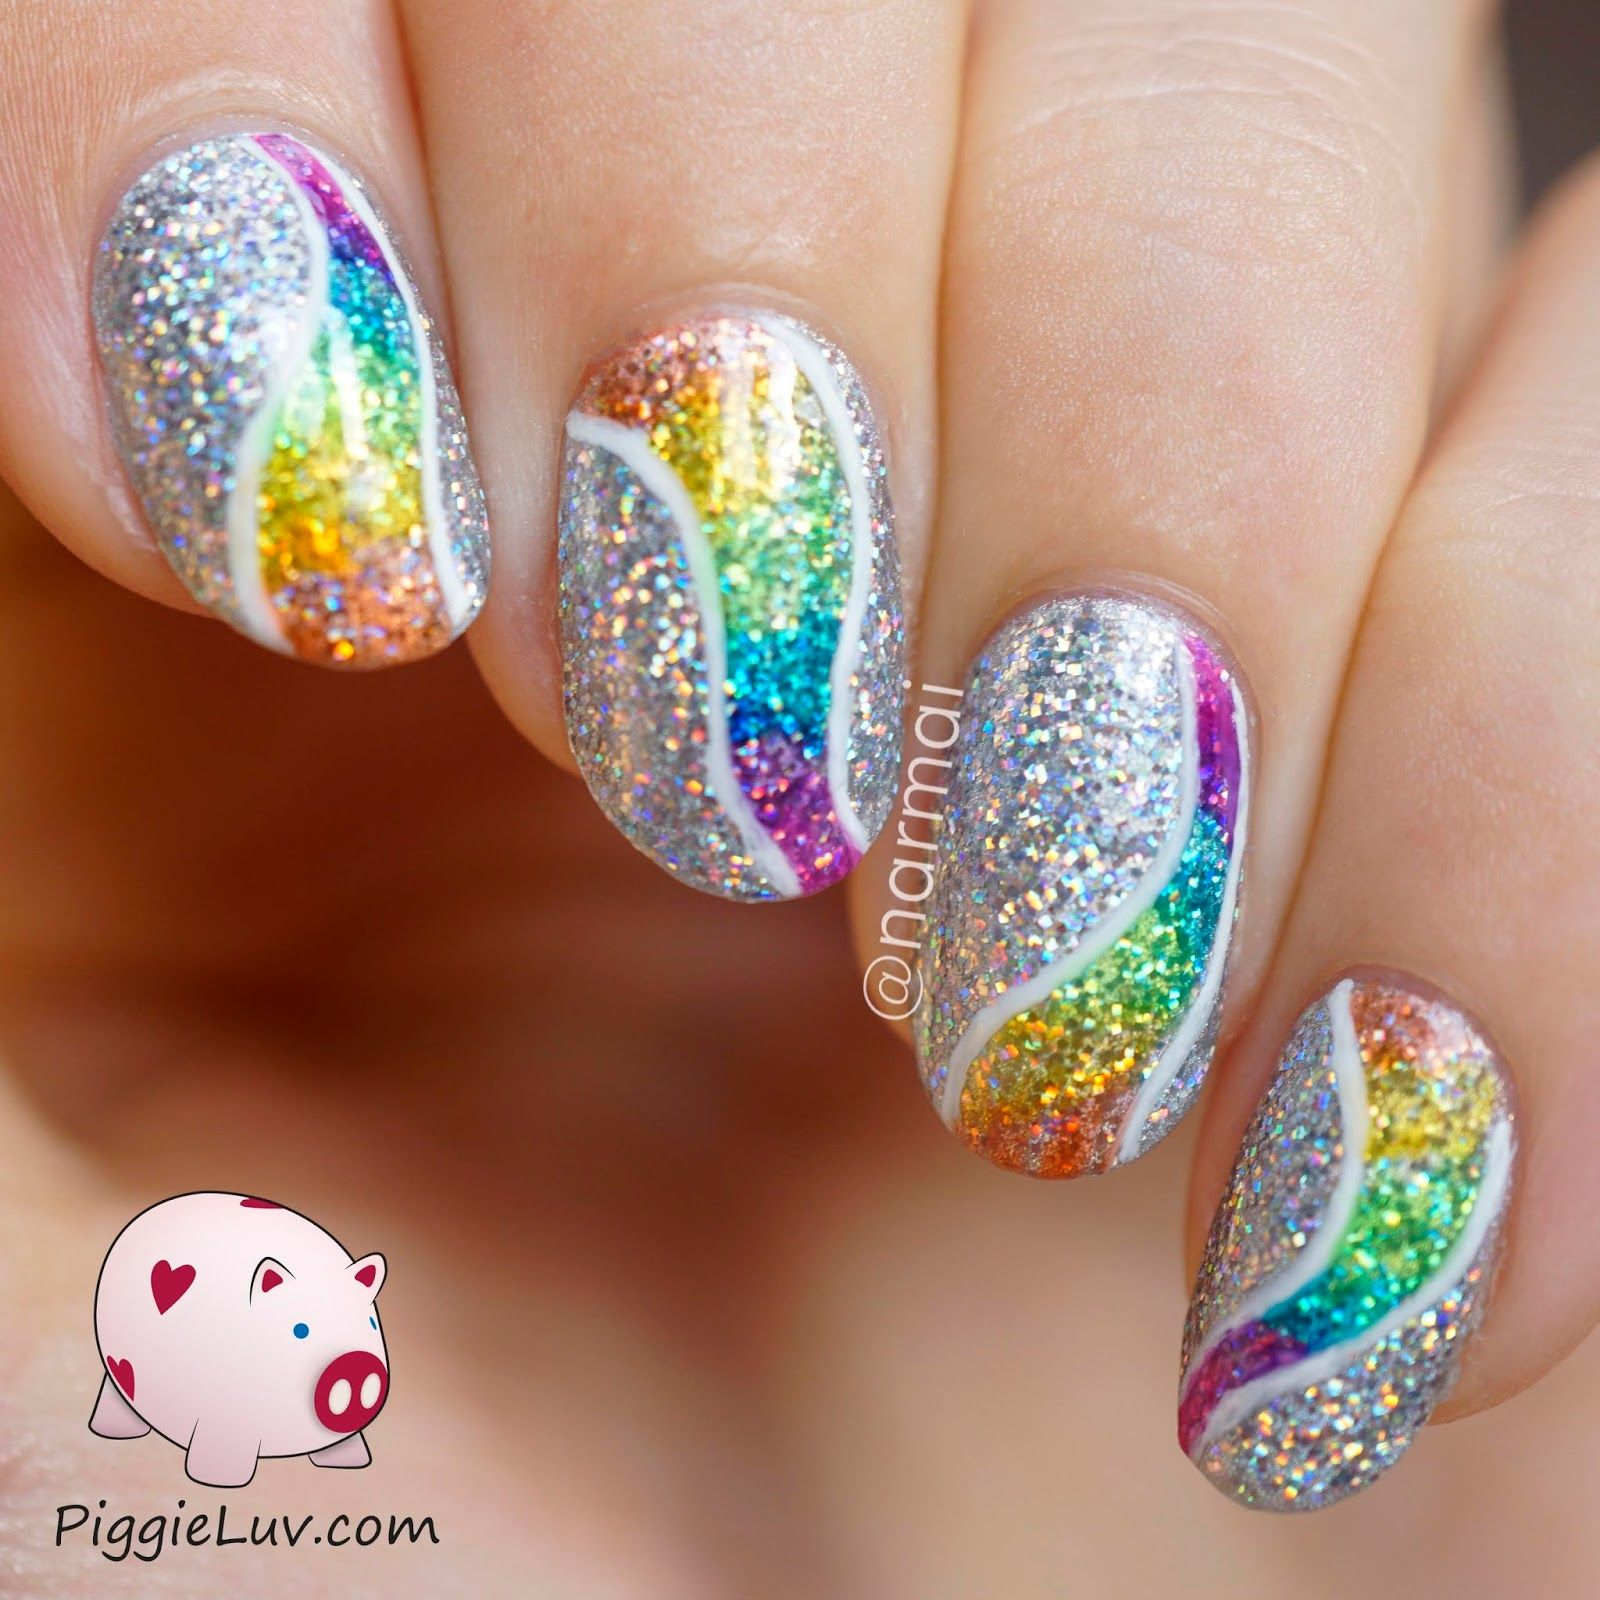 Colorful Nail Art: Glitter Tornado Nail Art With OPI Color Paints